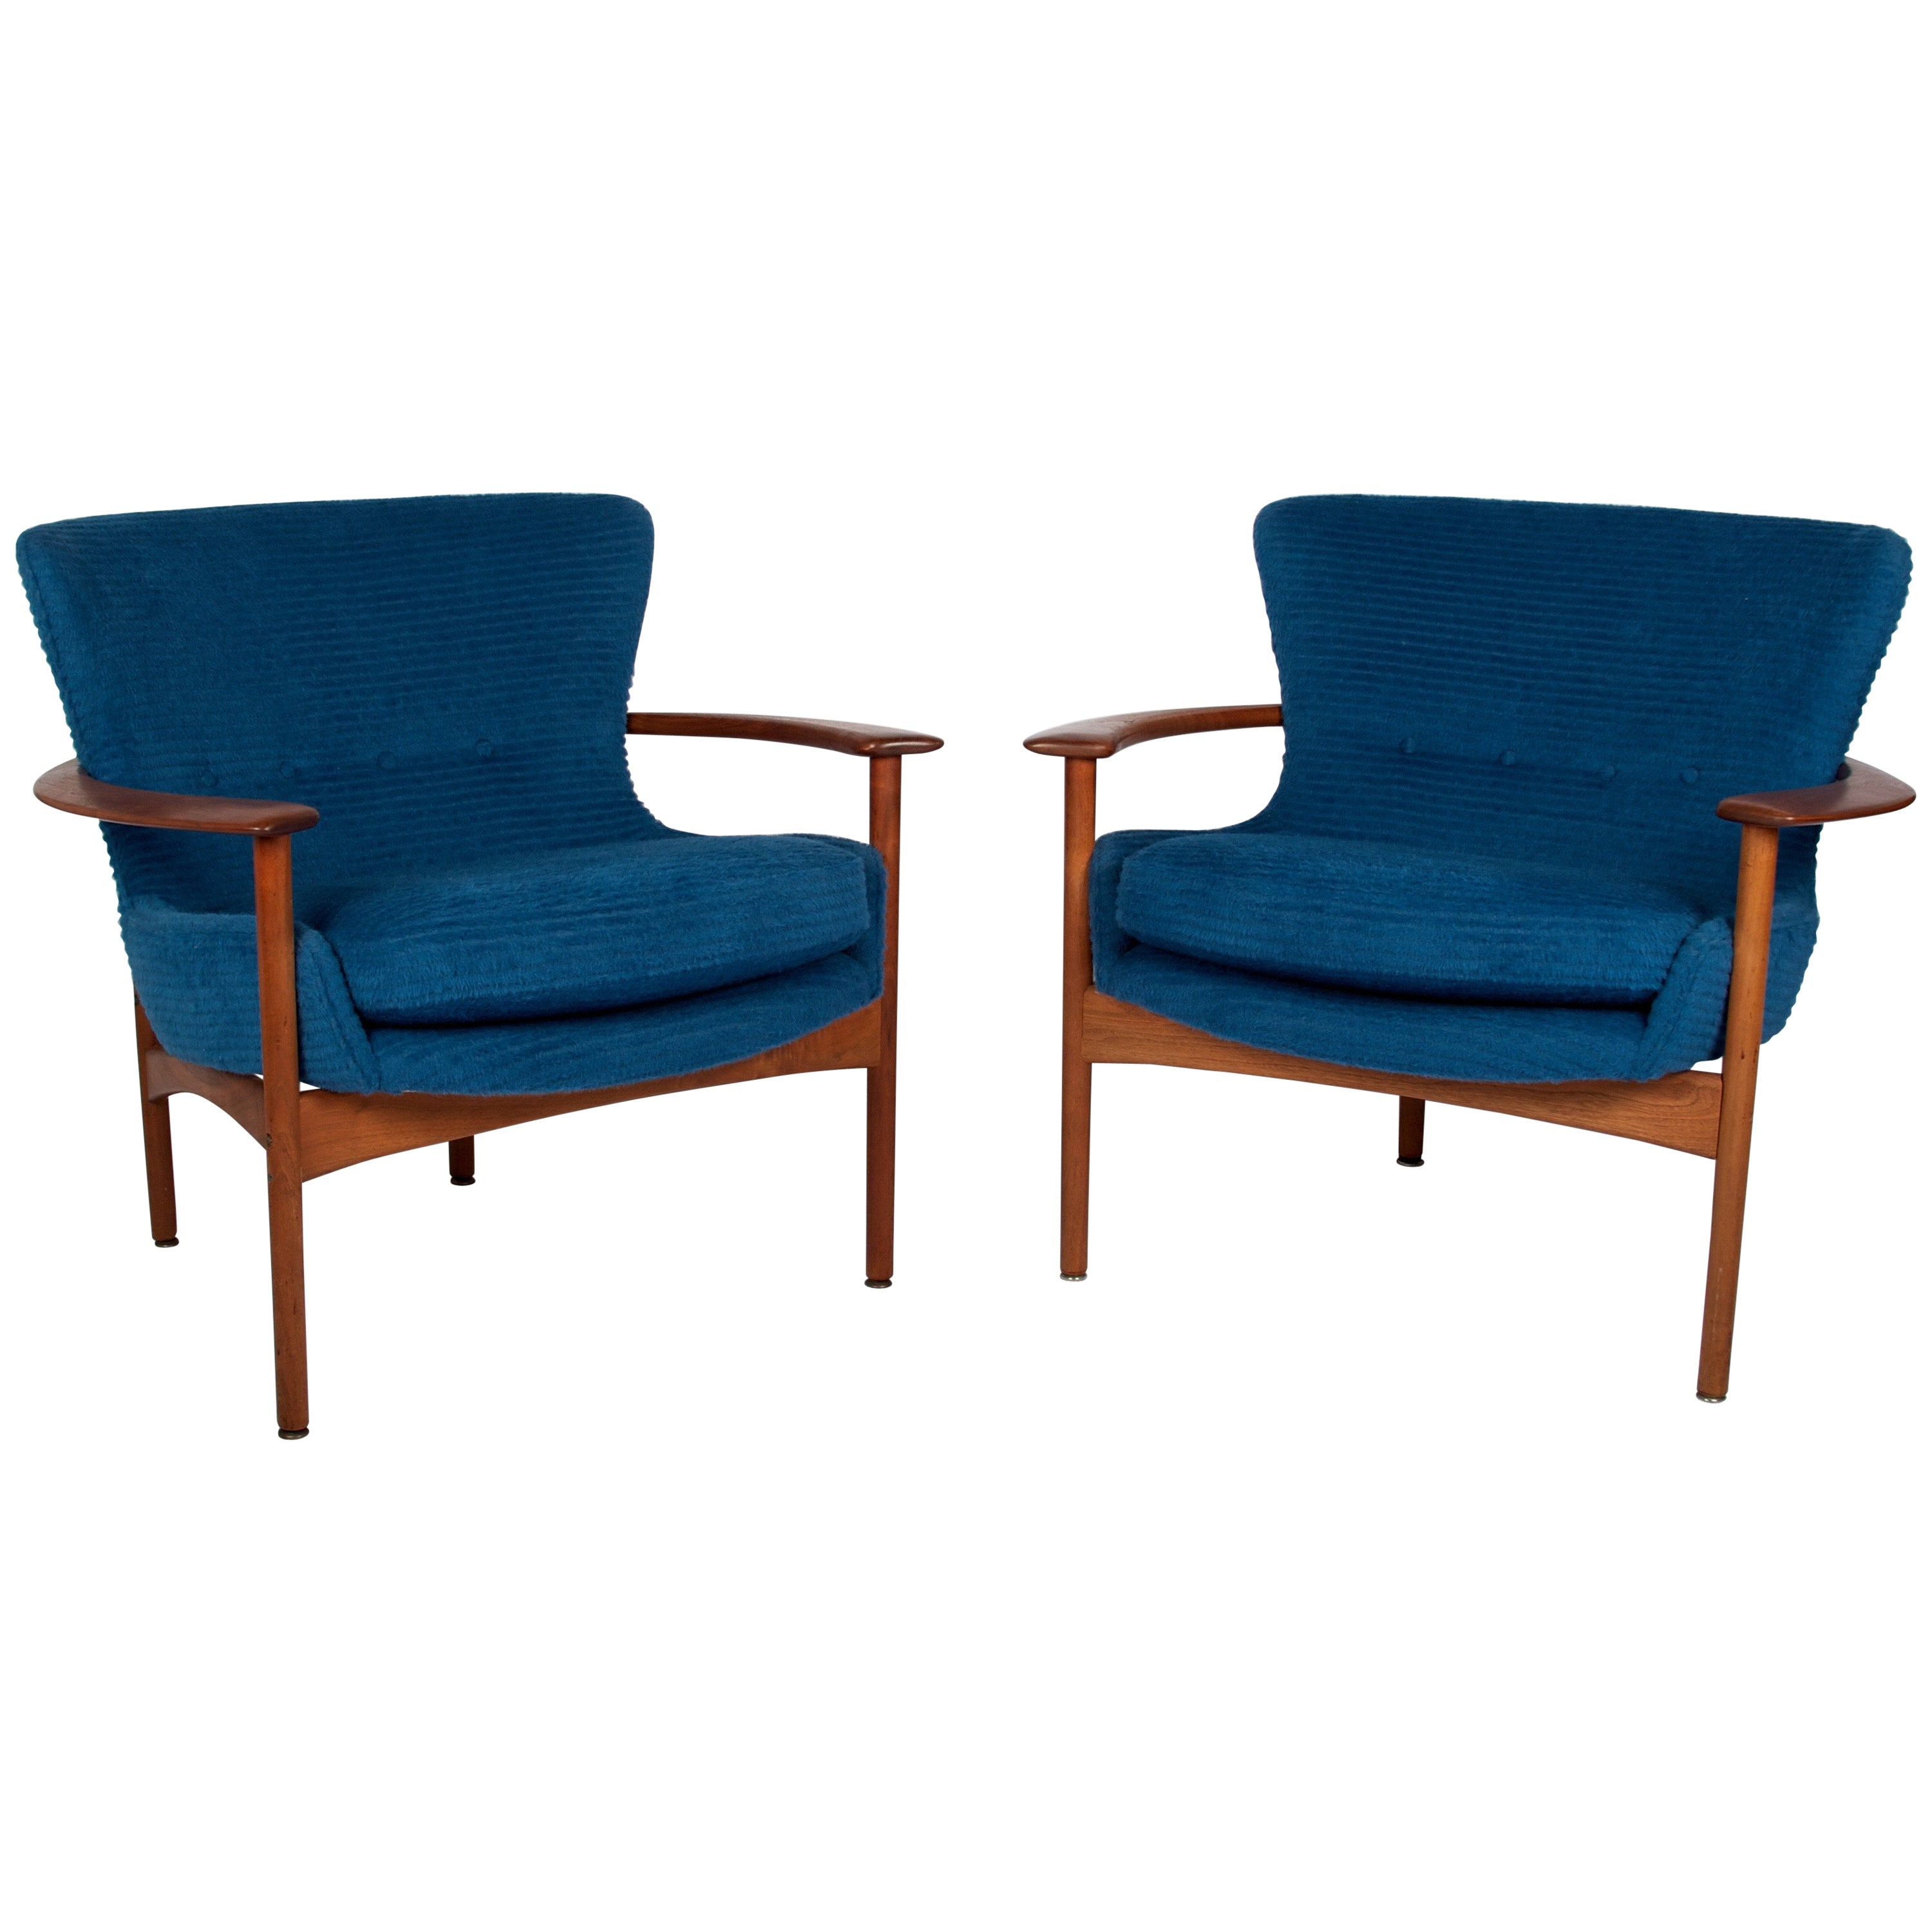 "Pair of ""Horseshoe"" Lounge Chairs by Ib Kofod, Larsen for Selig"